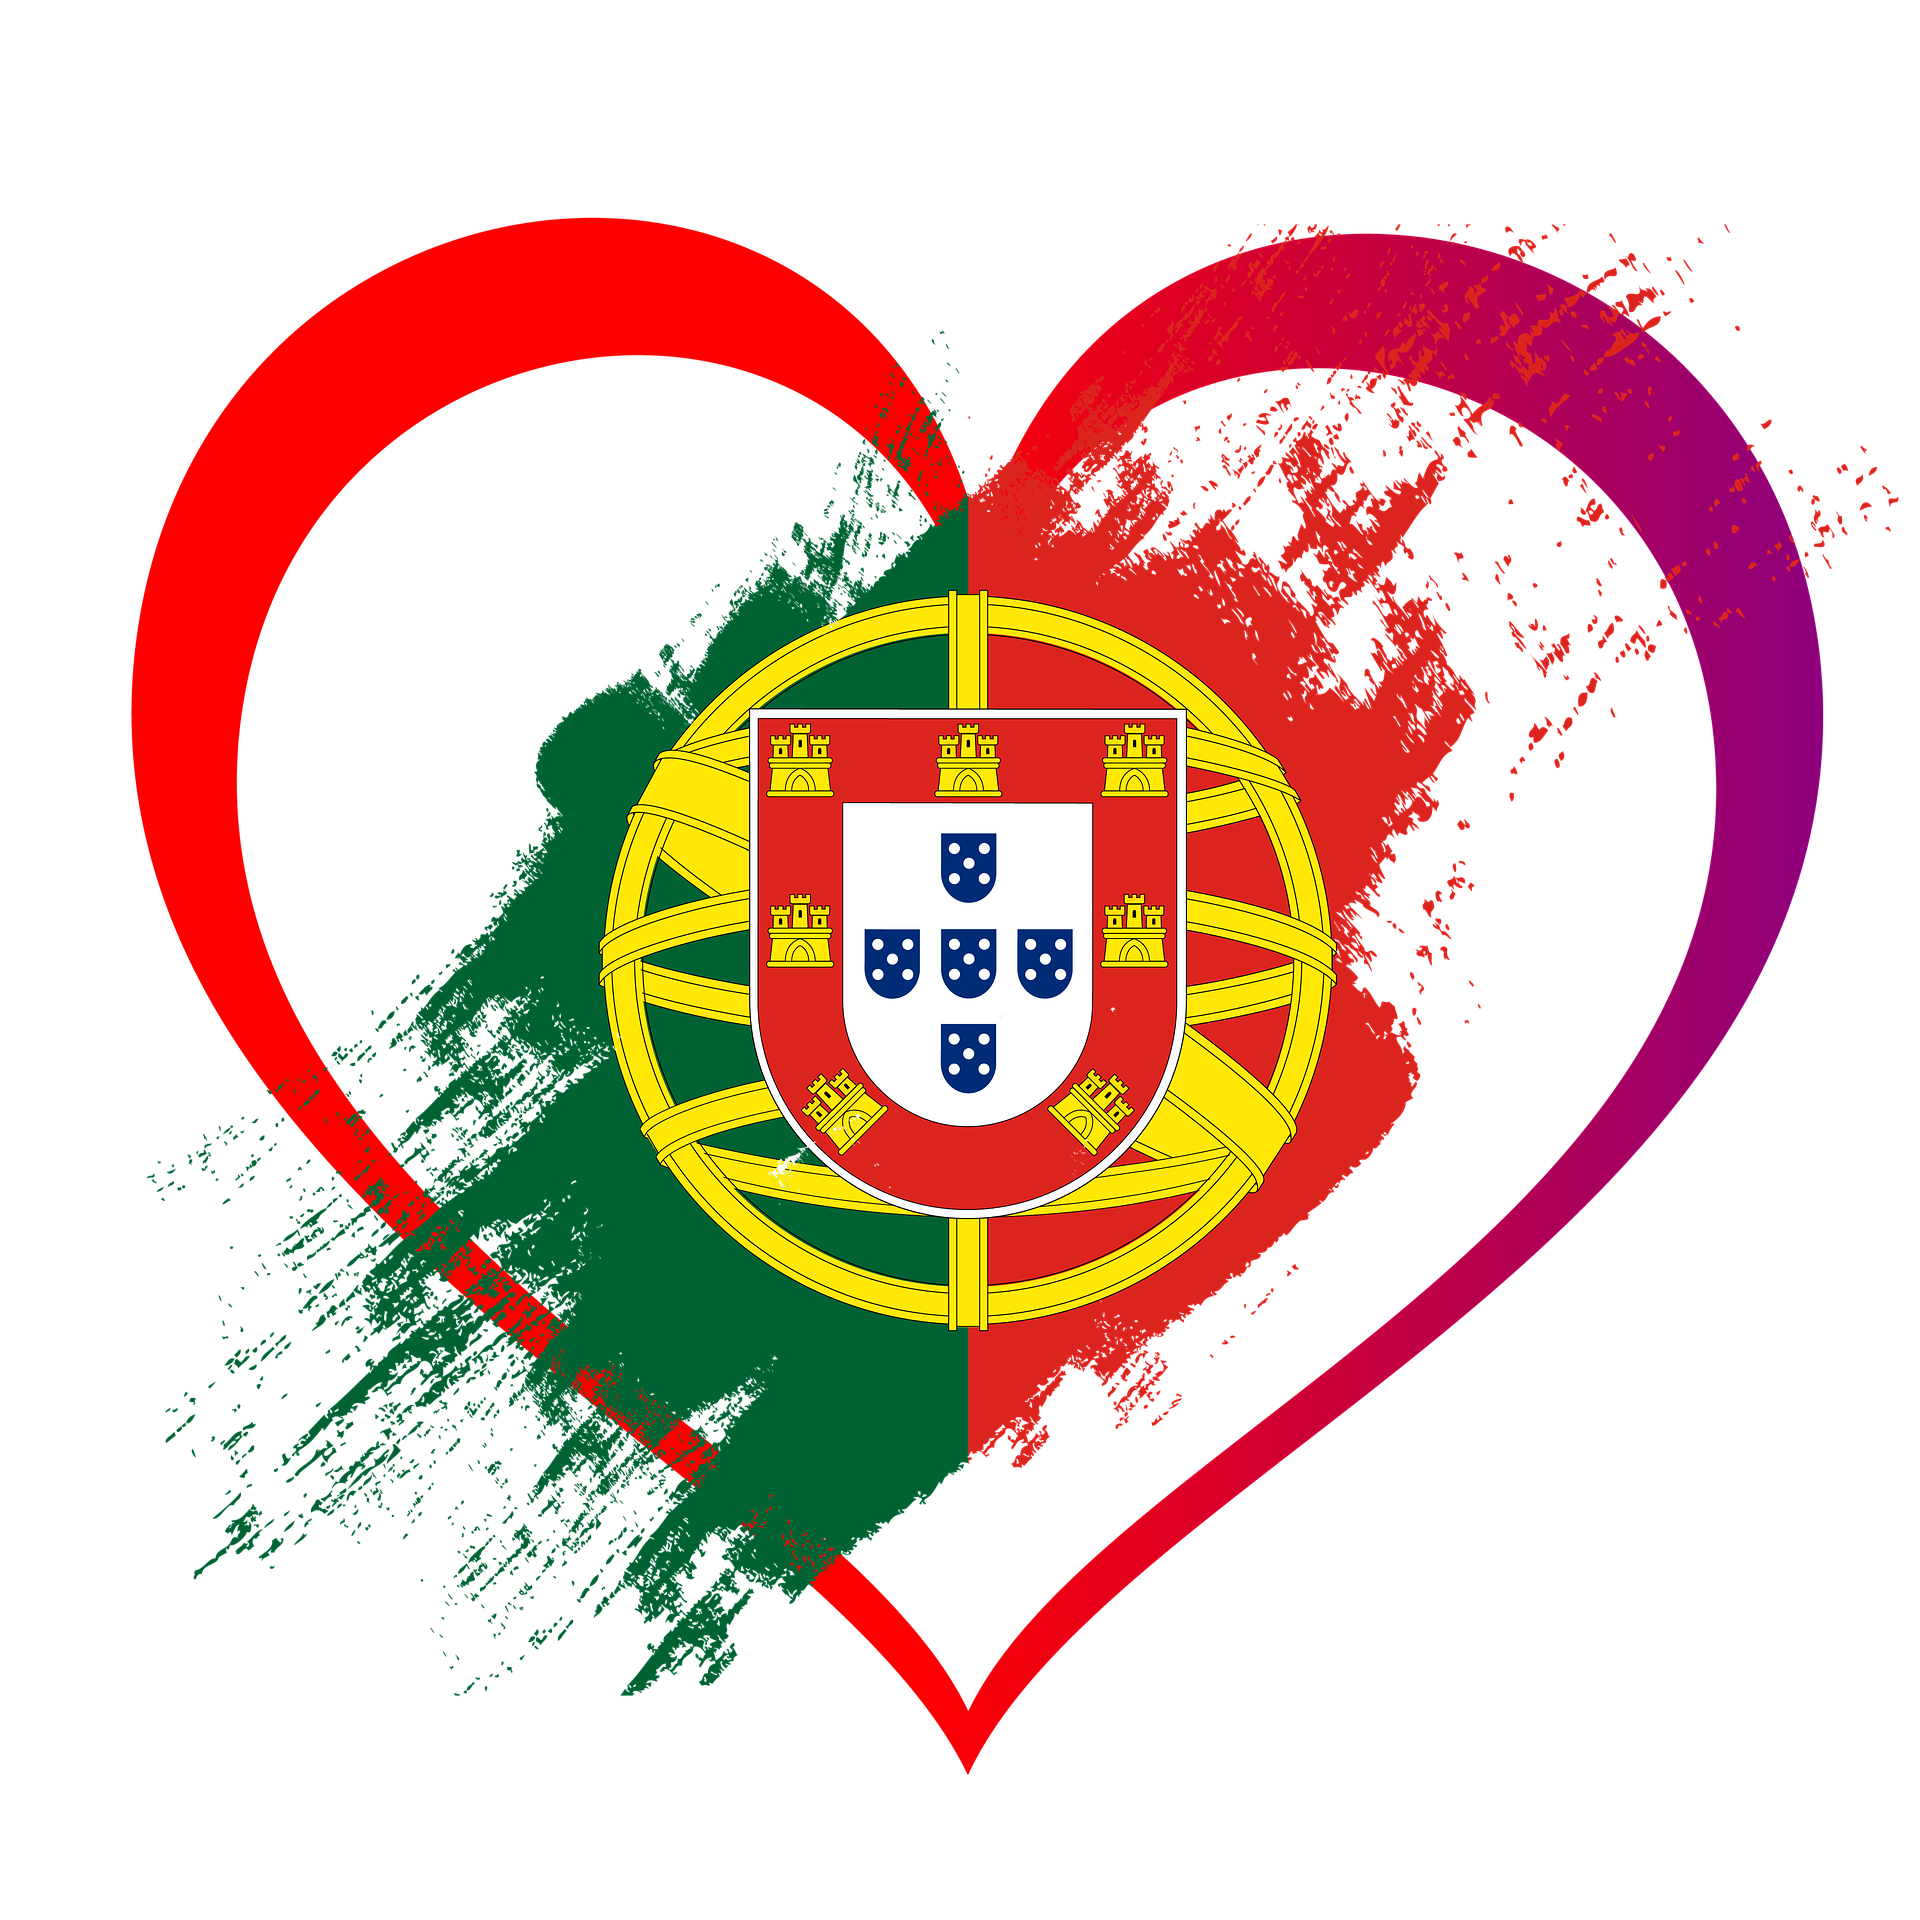 Portugal's coat of arms inside a heart